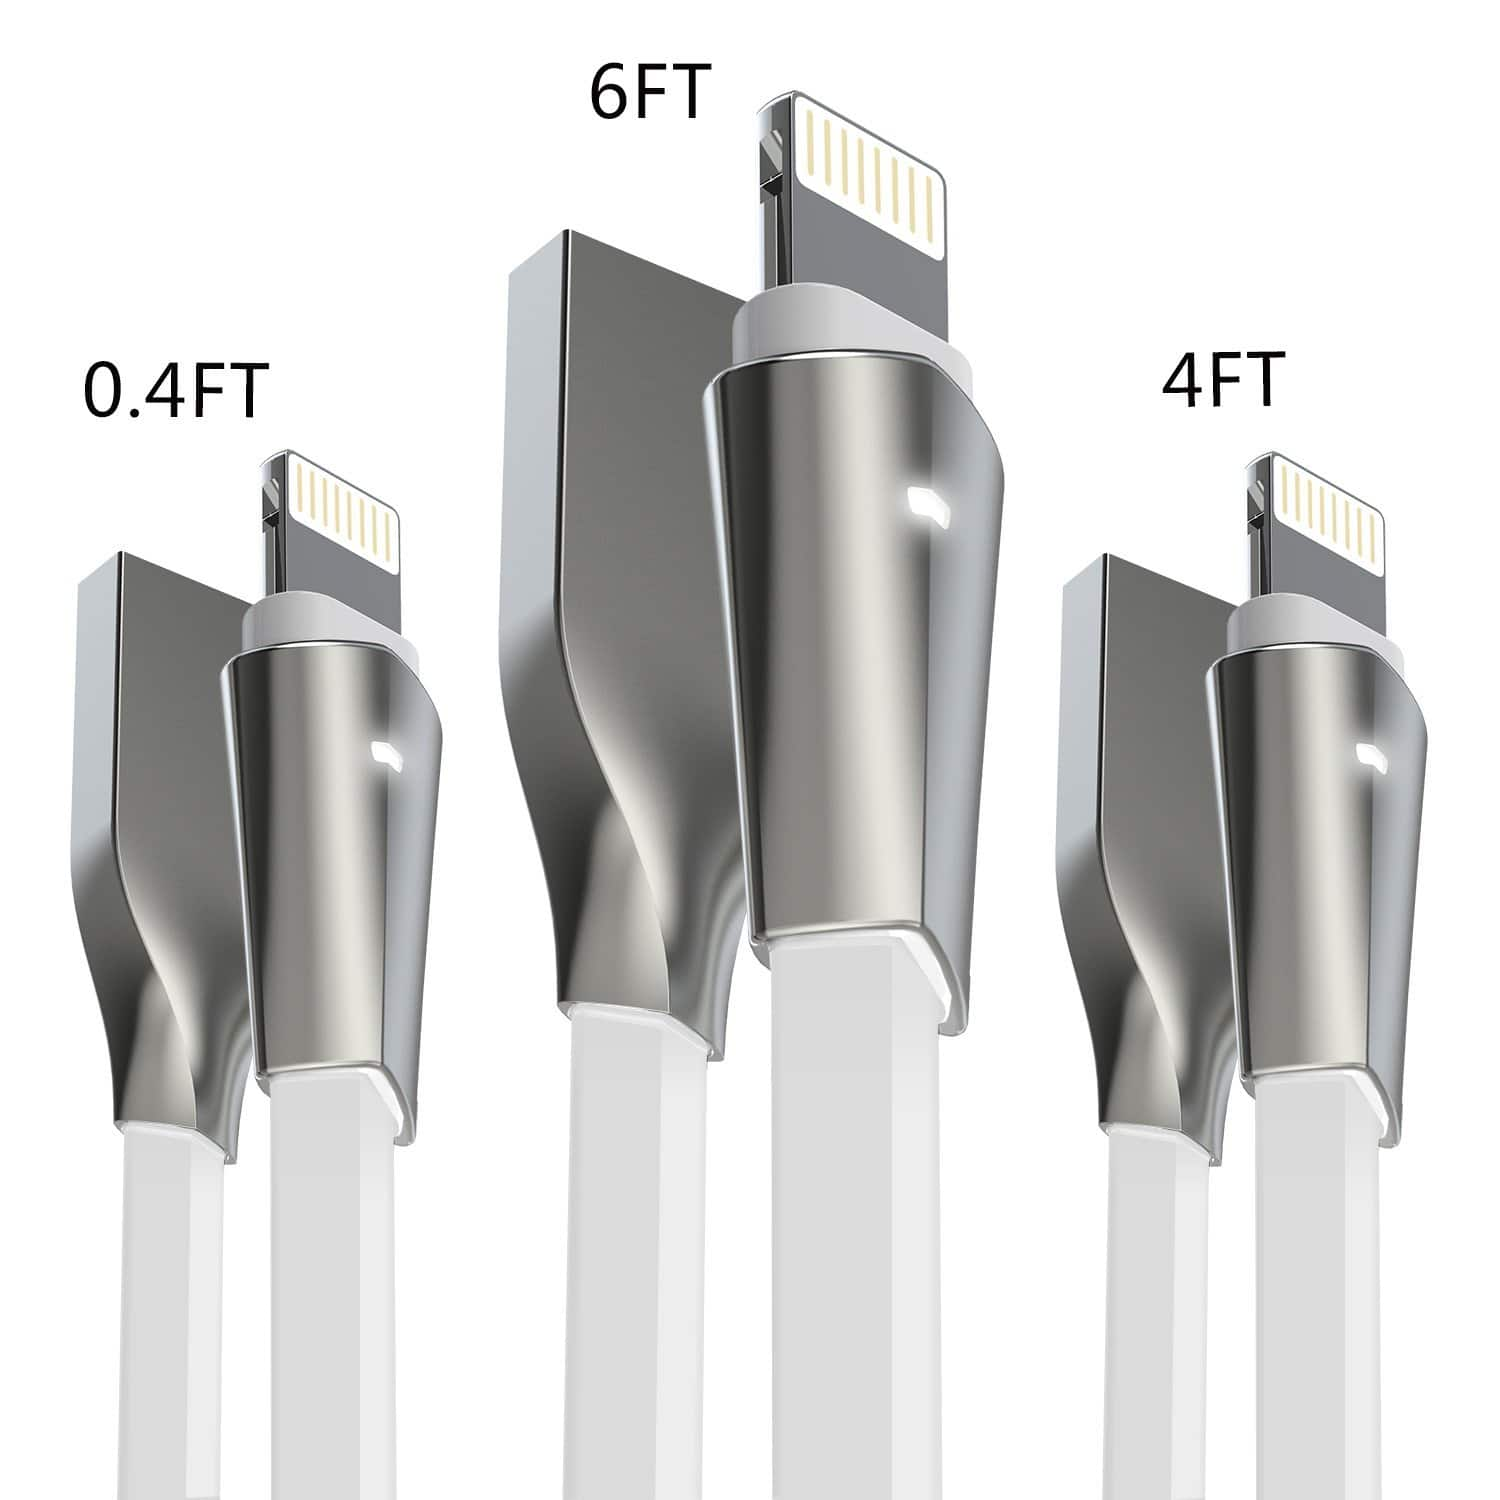 3-Pack Lightning Cable w/ LED Light [0.4FT+4FT+6FT] High Speed Charging Cord USB Zinc Alloyed Connector for iPhone $6.29